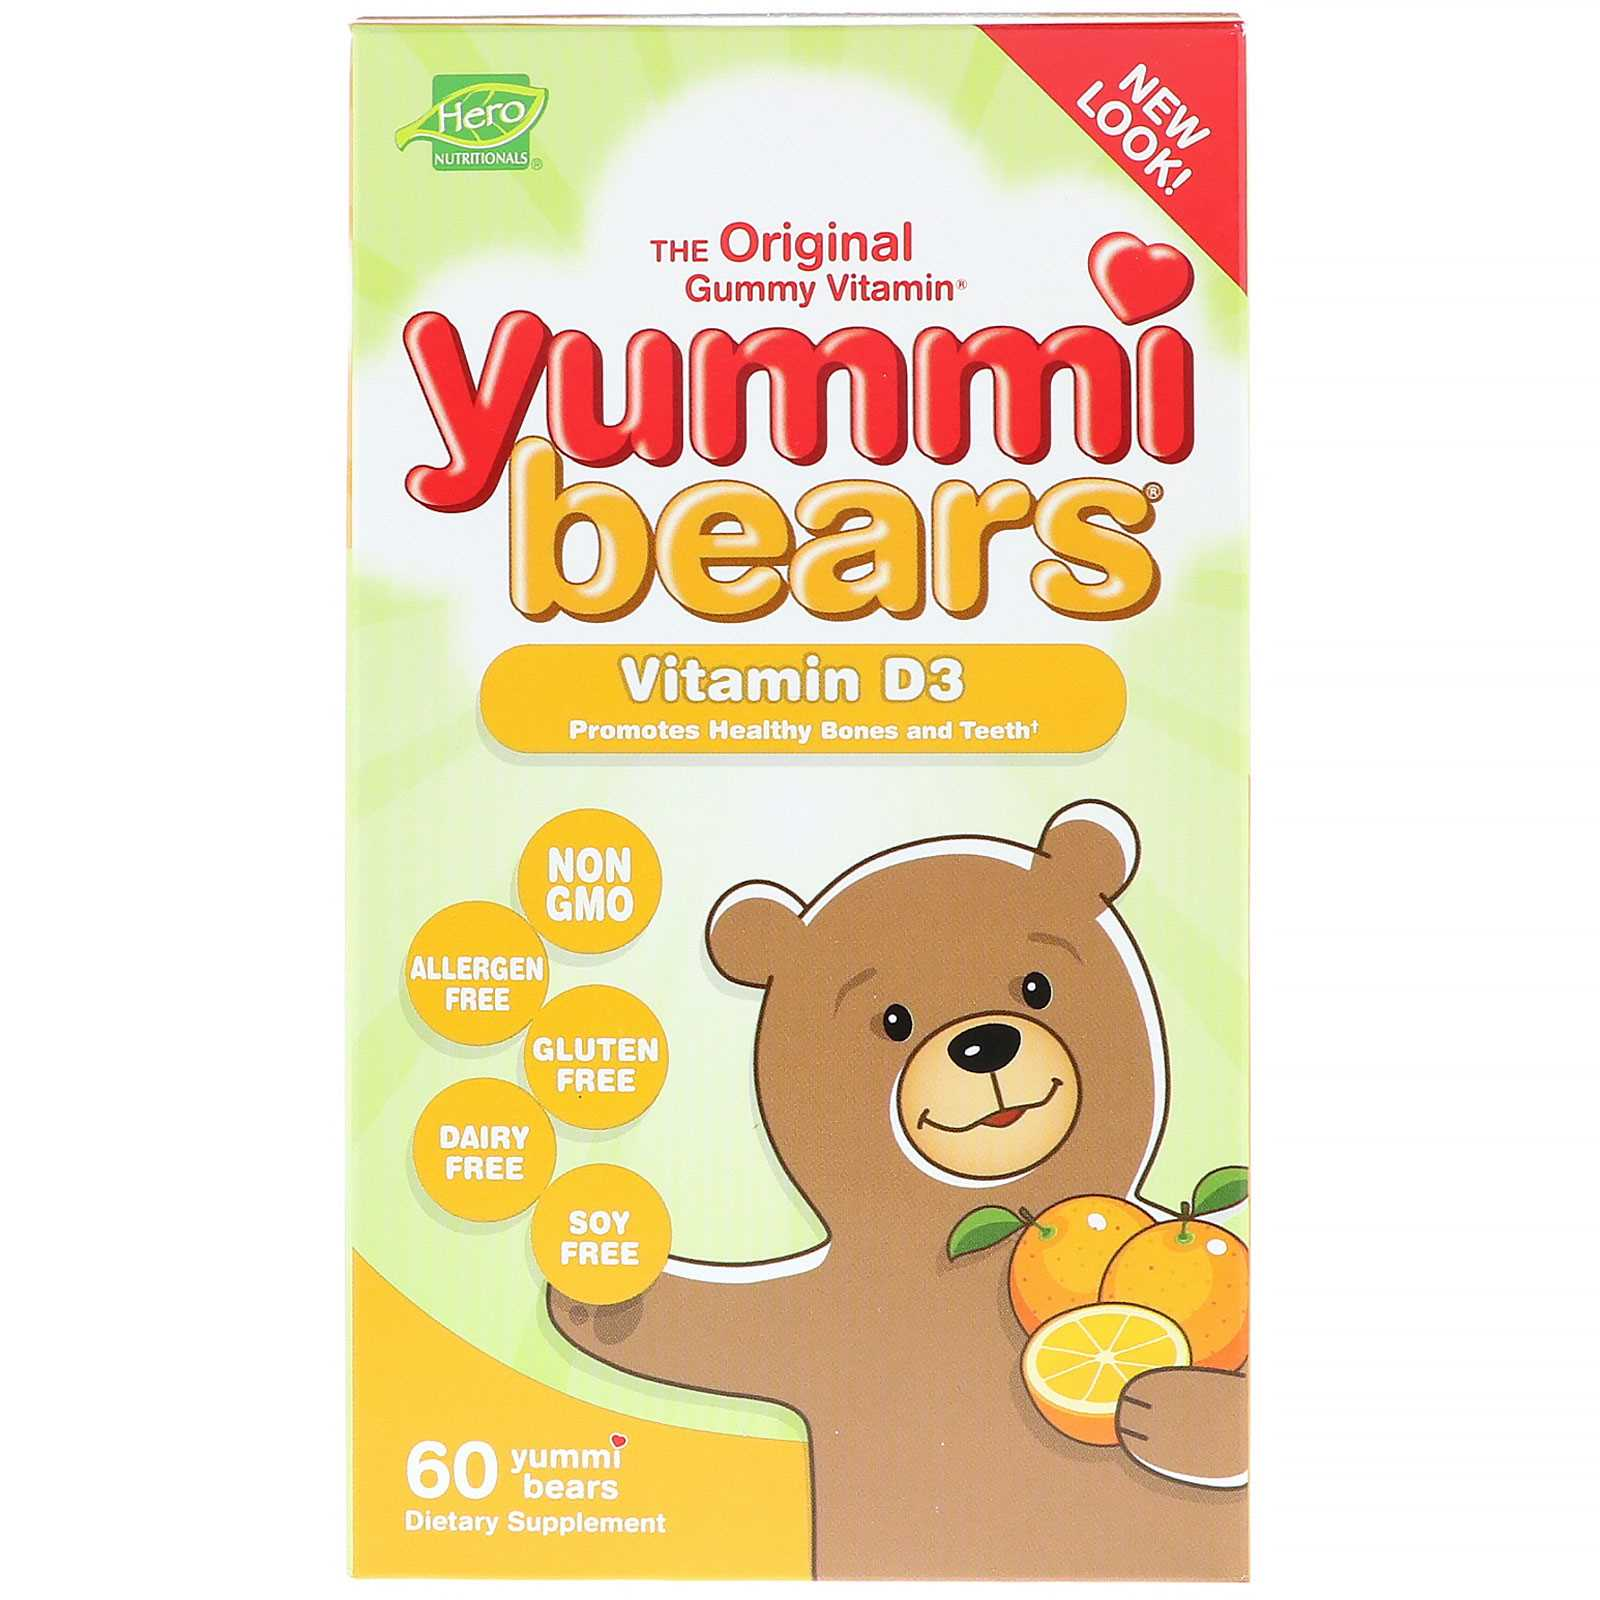 Hero Nutritionals Yummi Bears Vitamin D3